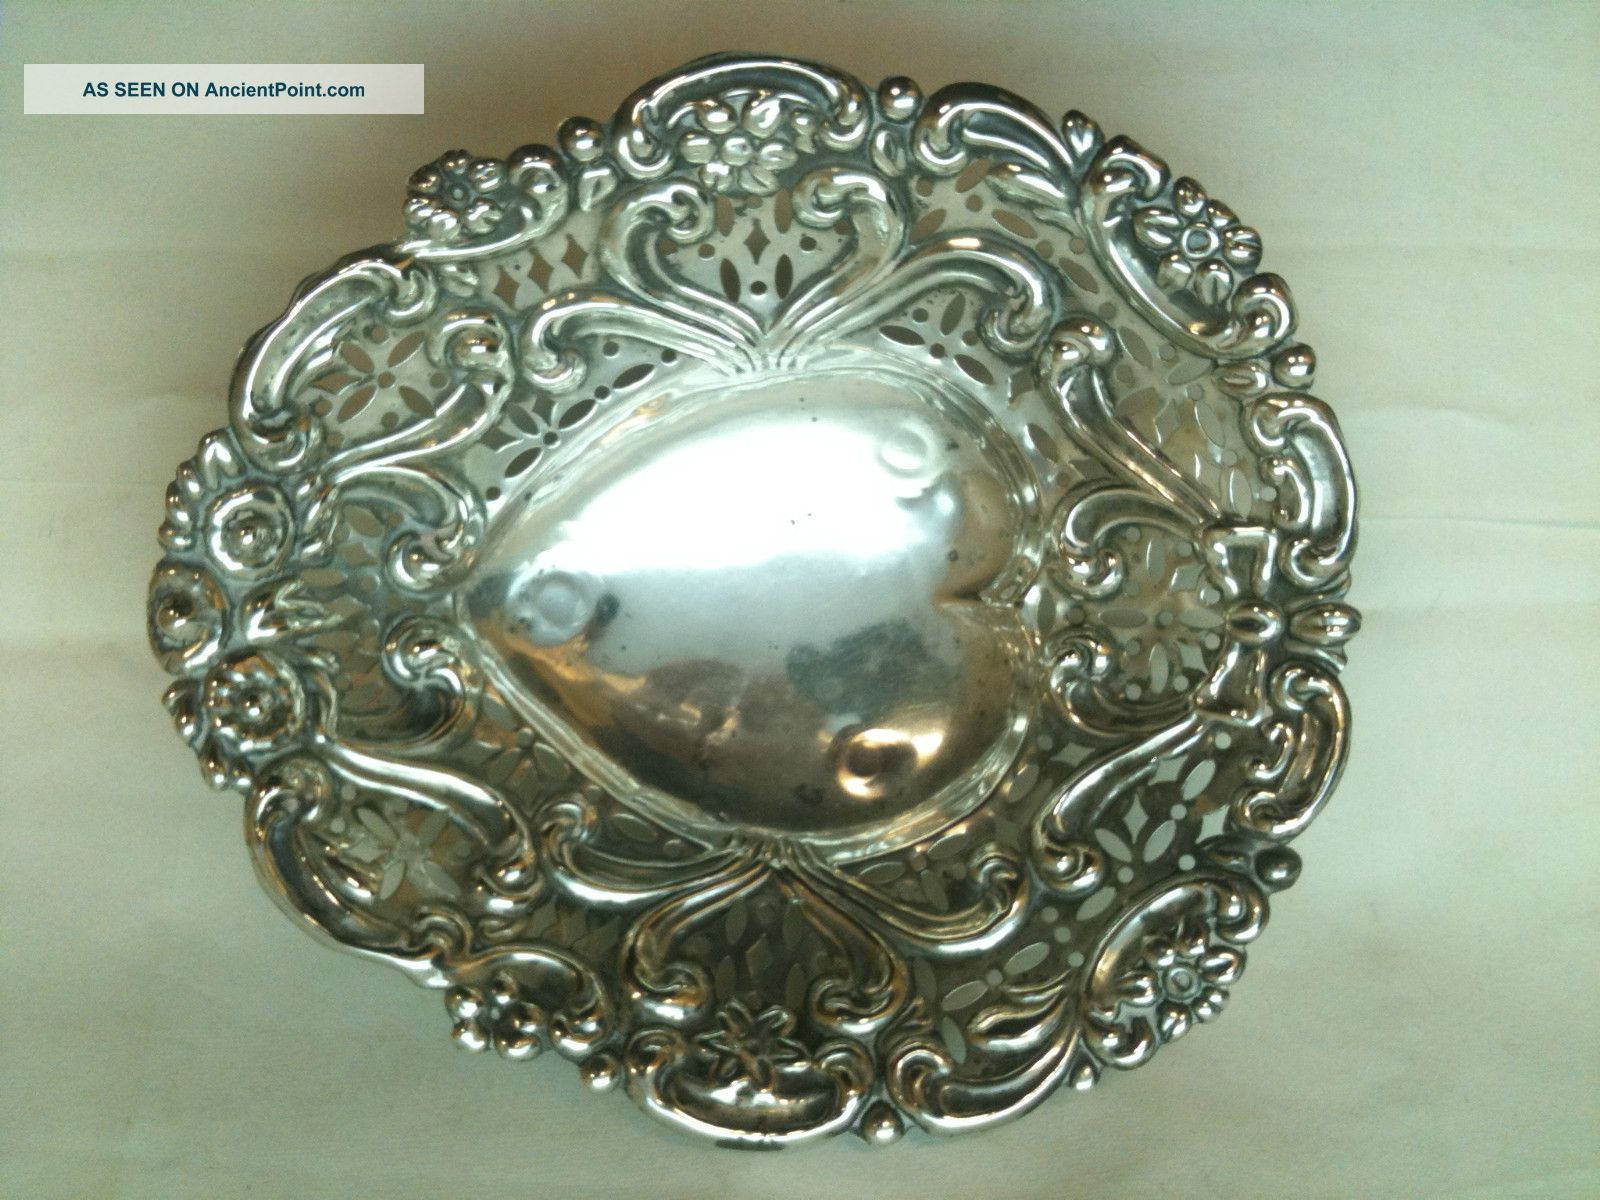 Antique Solid Silver Victorian Sweetmeat Dish Chester Ref 207/4 Dishes & Coasters photo